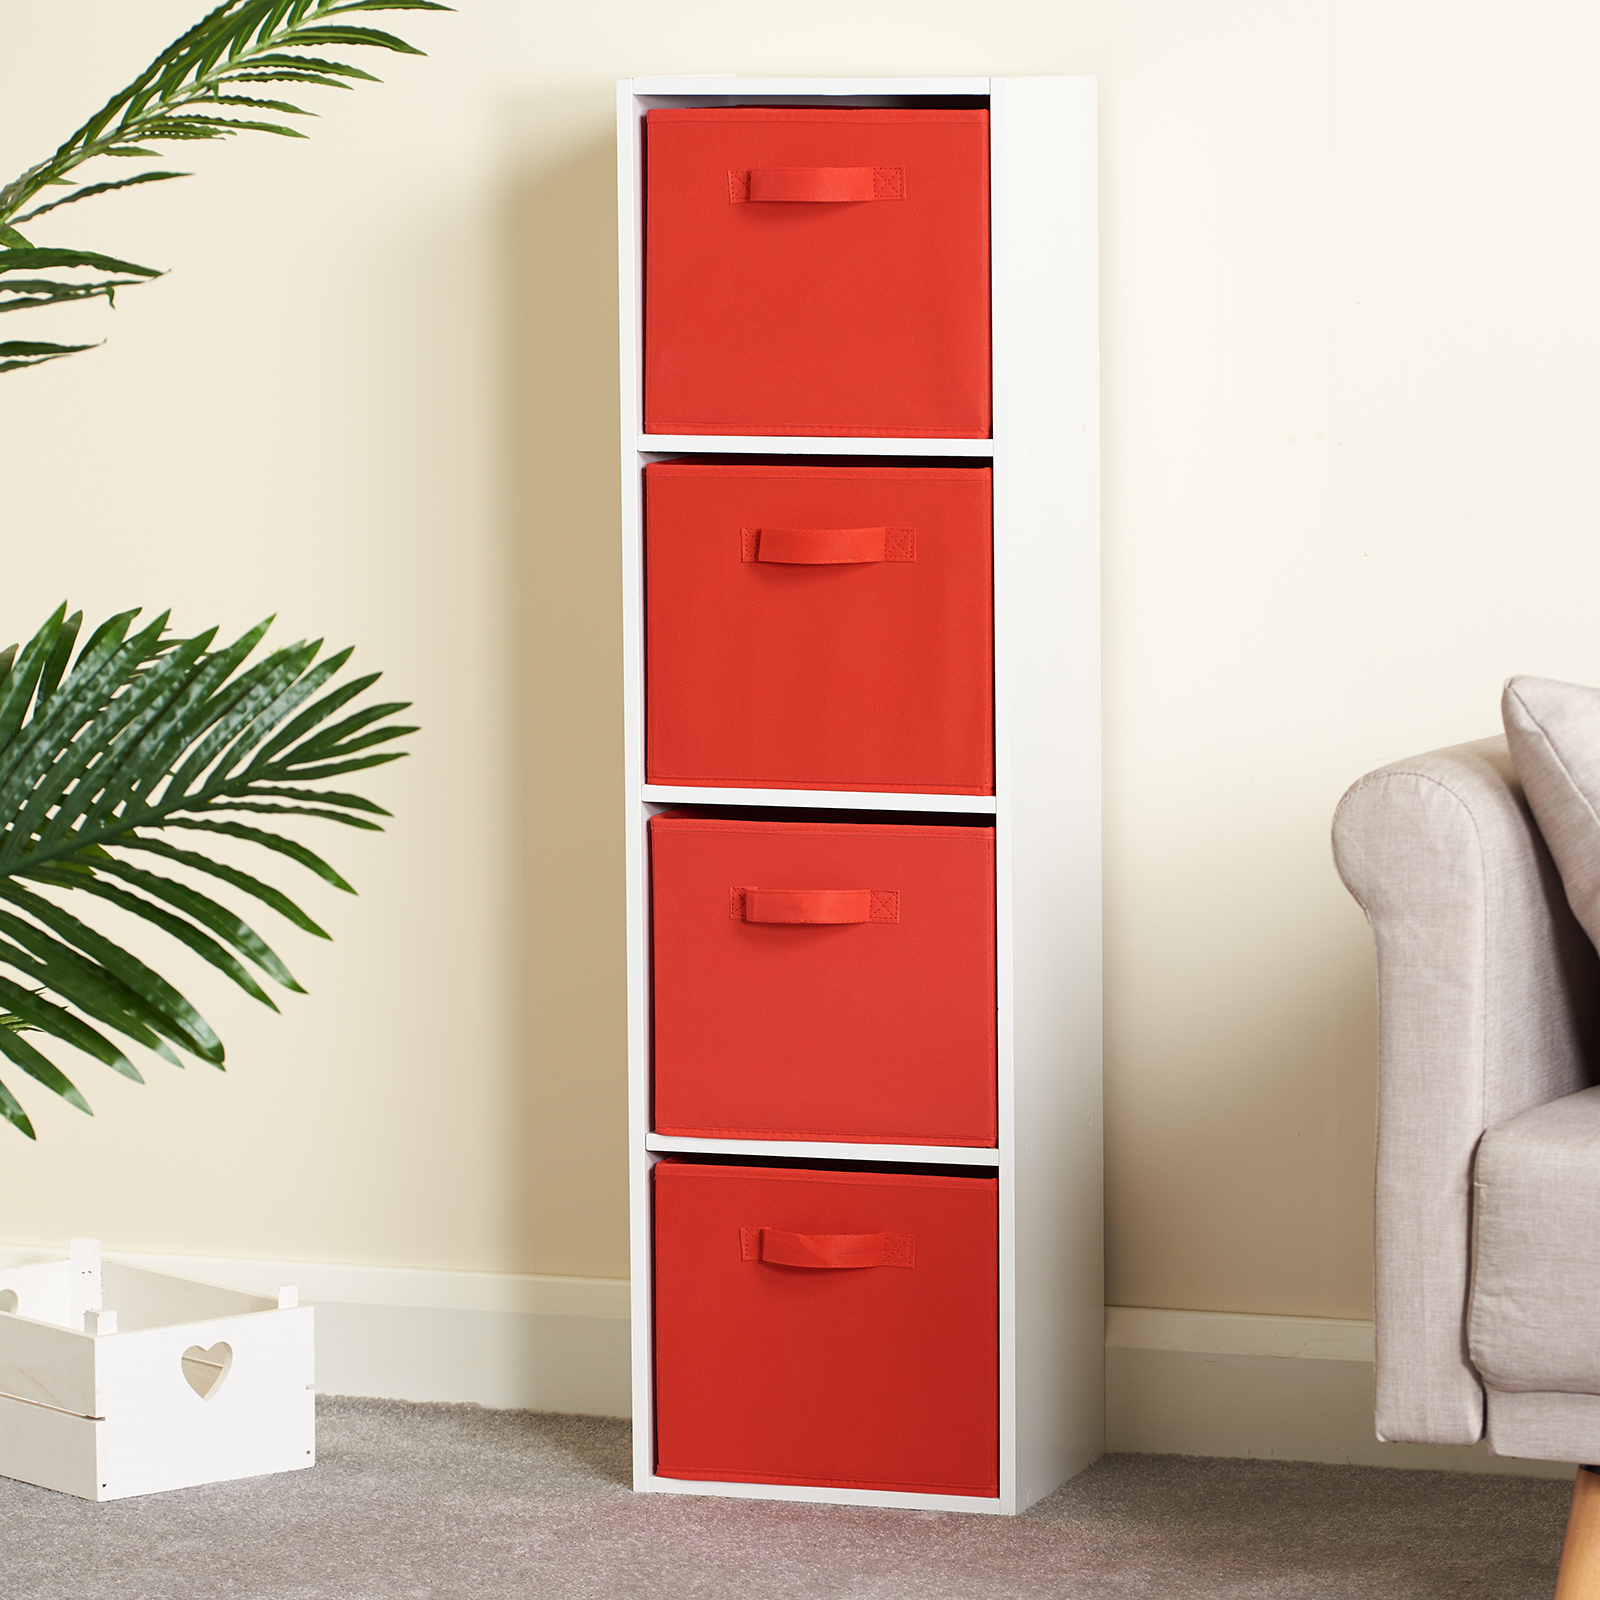 Hartleys-4-Tier-White-Bookcase-Wooden-Display-Shelving-Unit-amp-Fabric-Storage-Box thumbnail 36